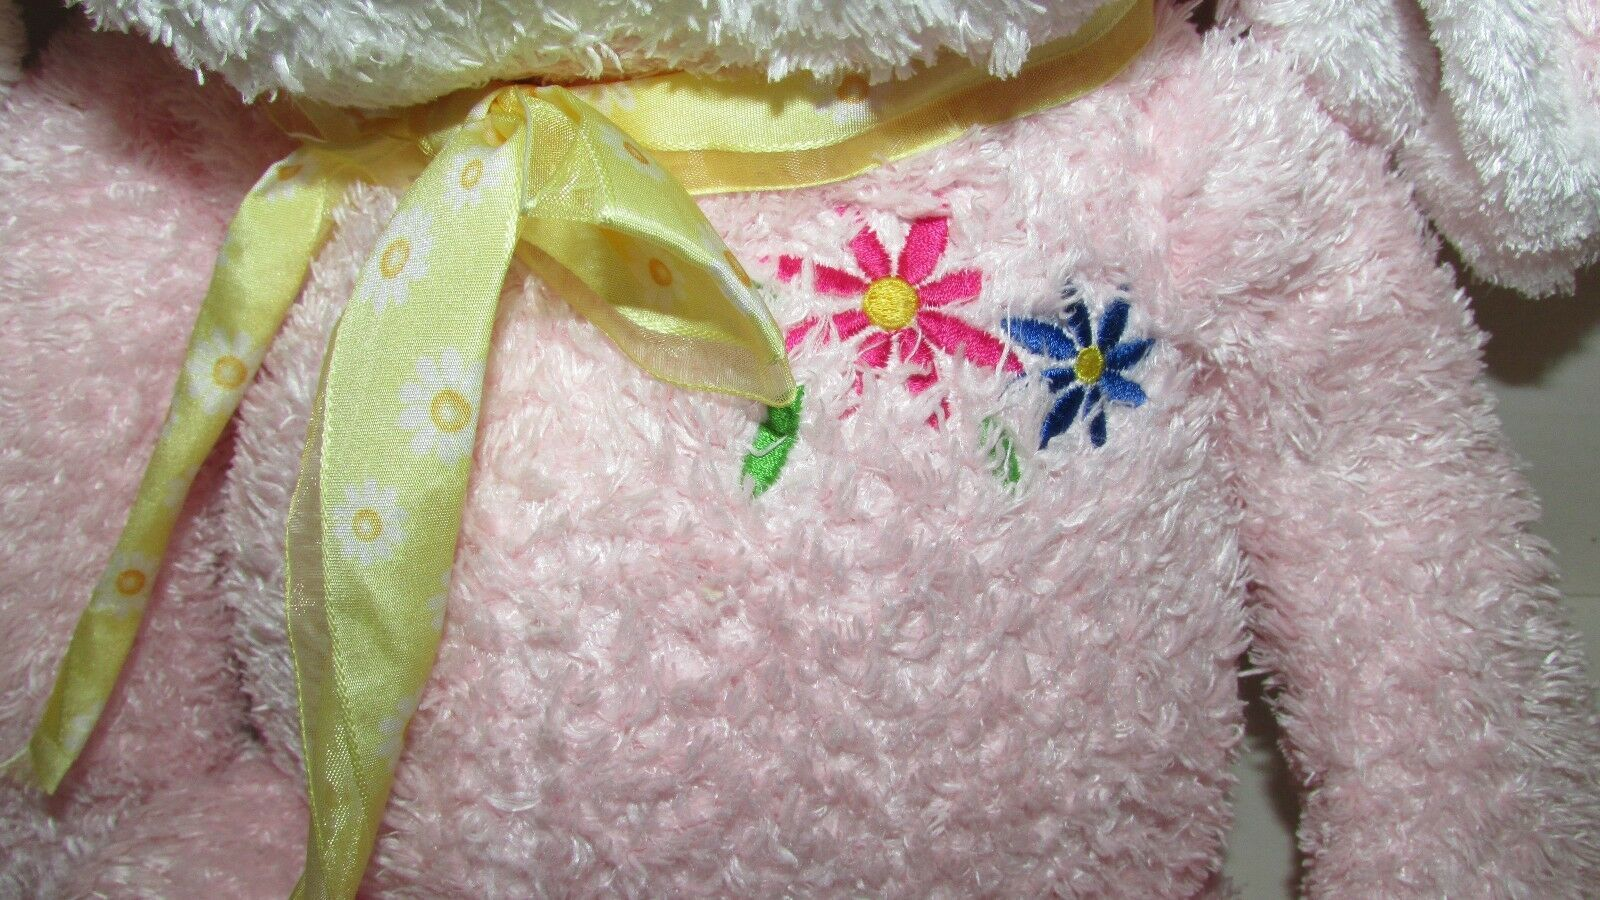 Commonwealth pink white bunny rabbit plush flowers on chest yellow bow floppy